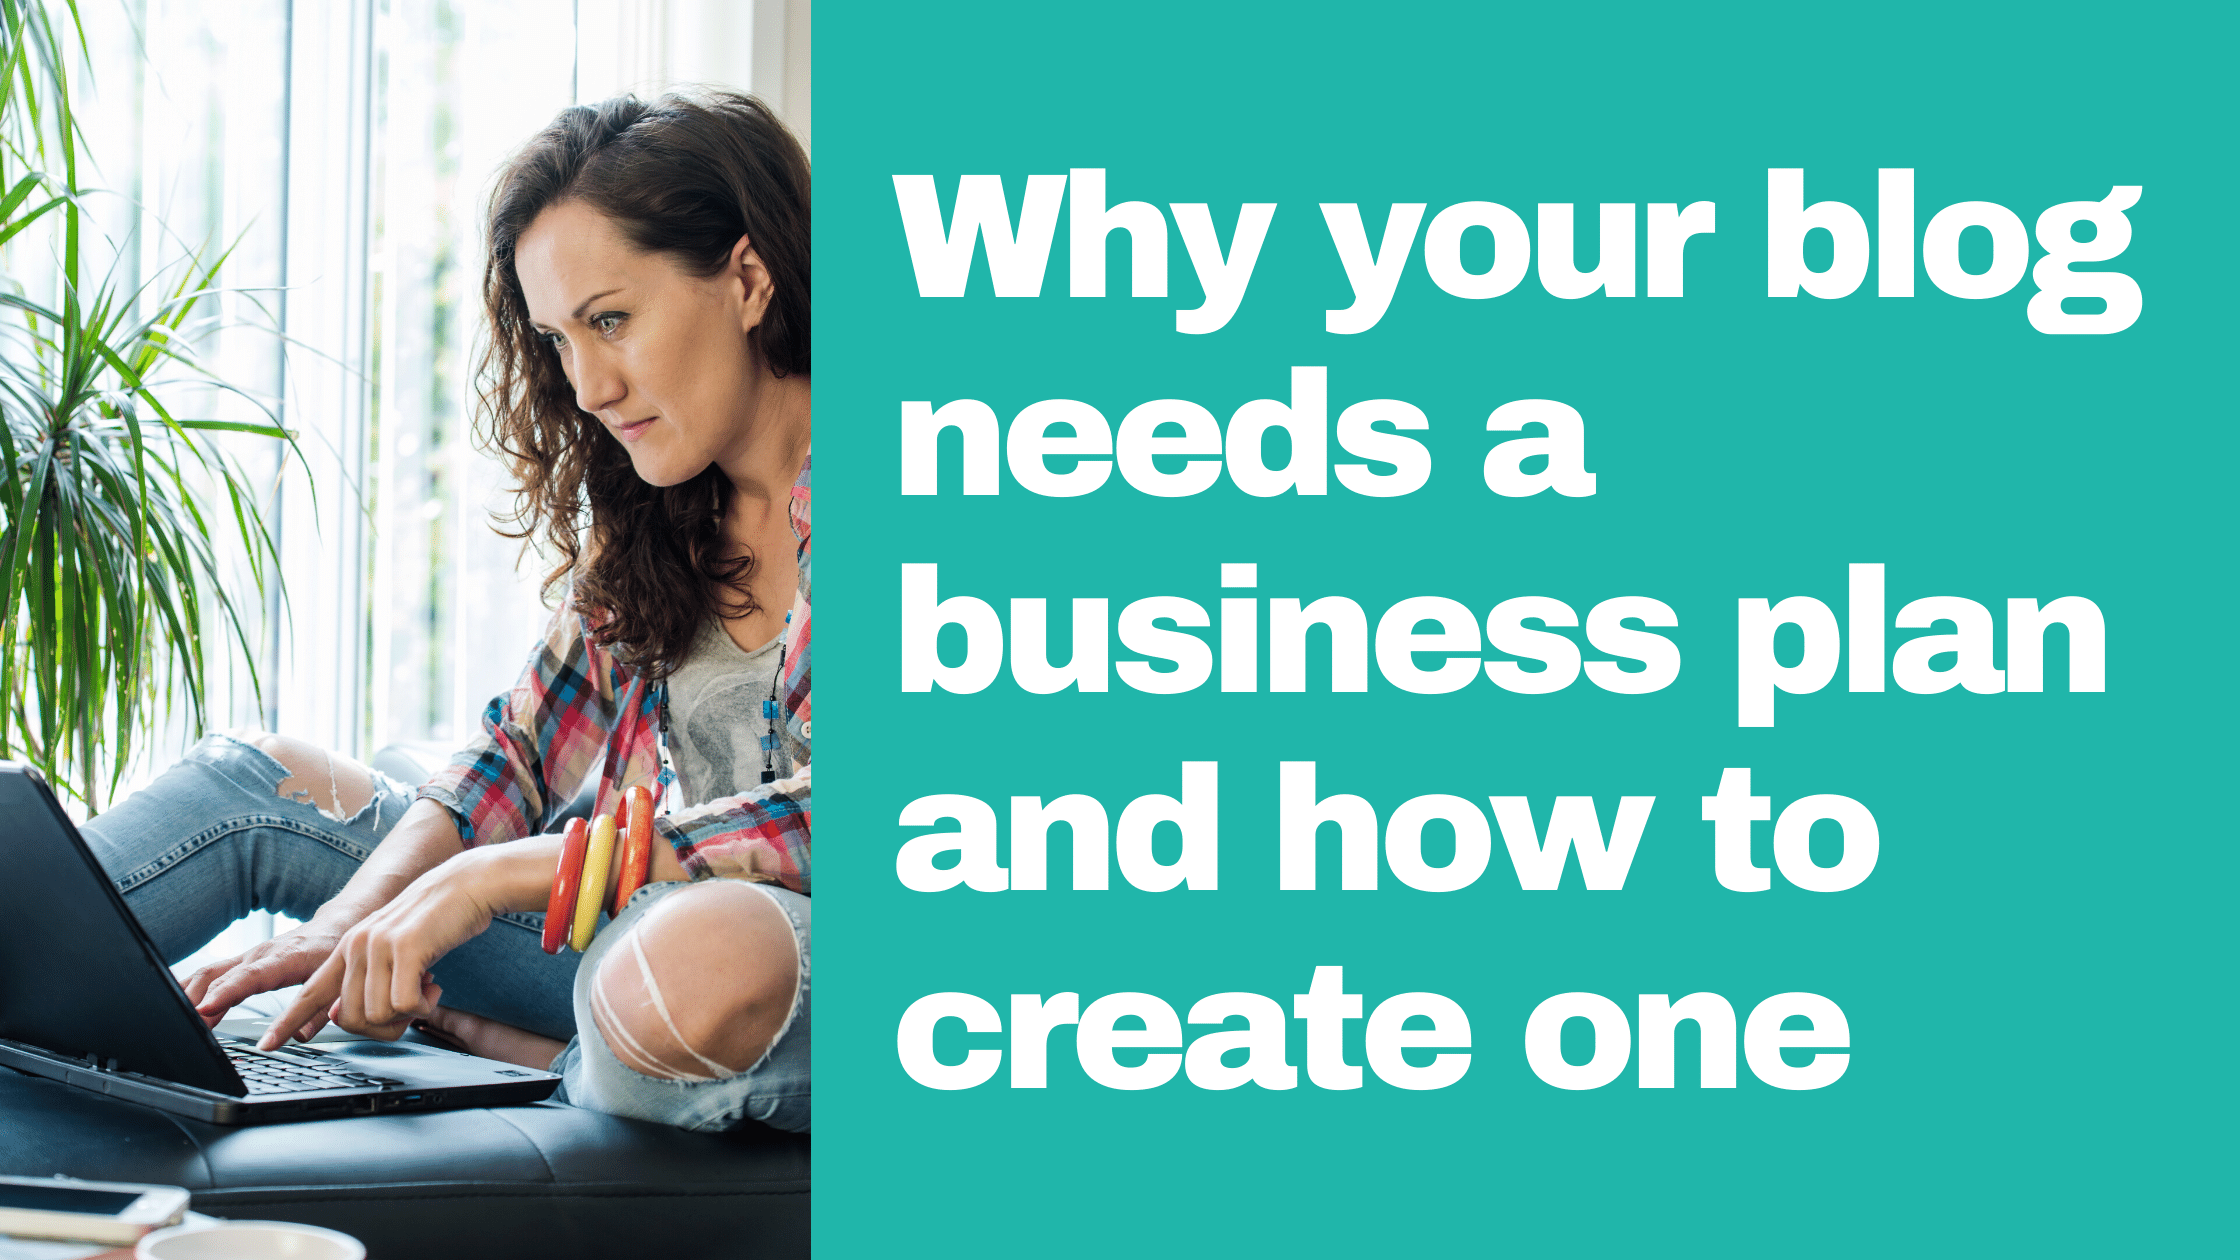 Why your blog needs a business plan and how to create one